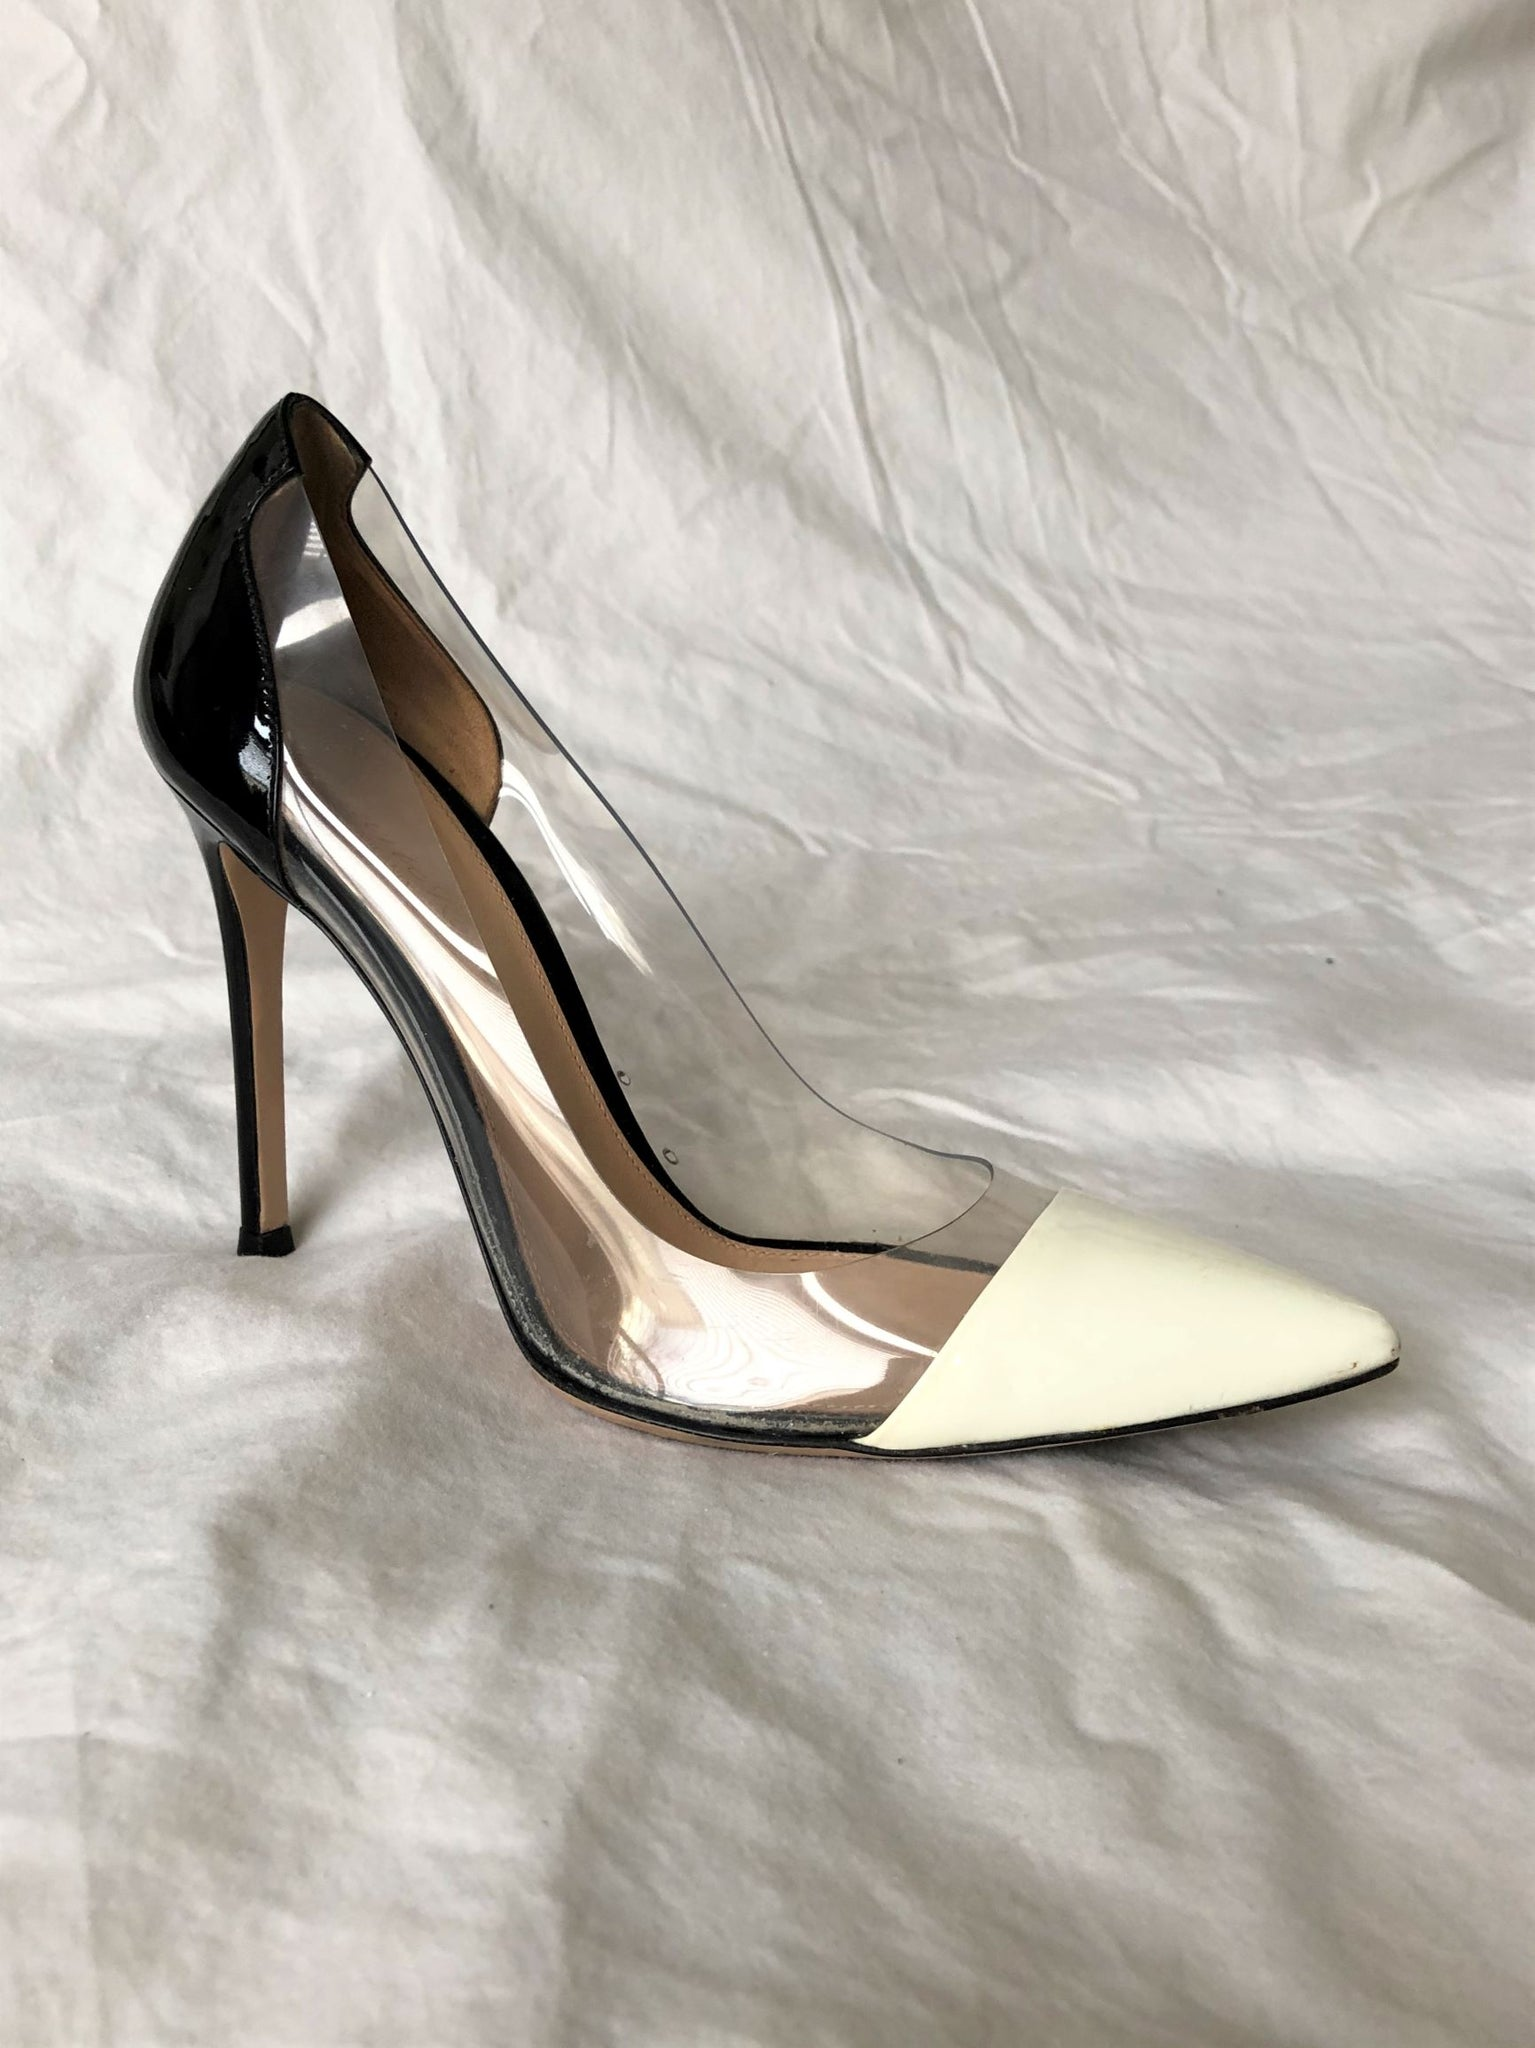 Gianvito Rossi Size 6 Clear and Ivory Pumps